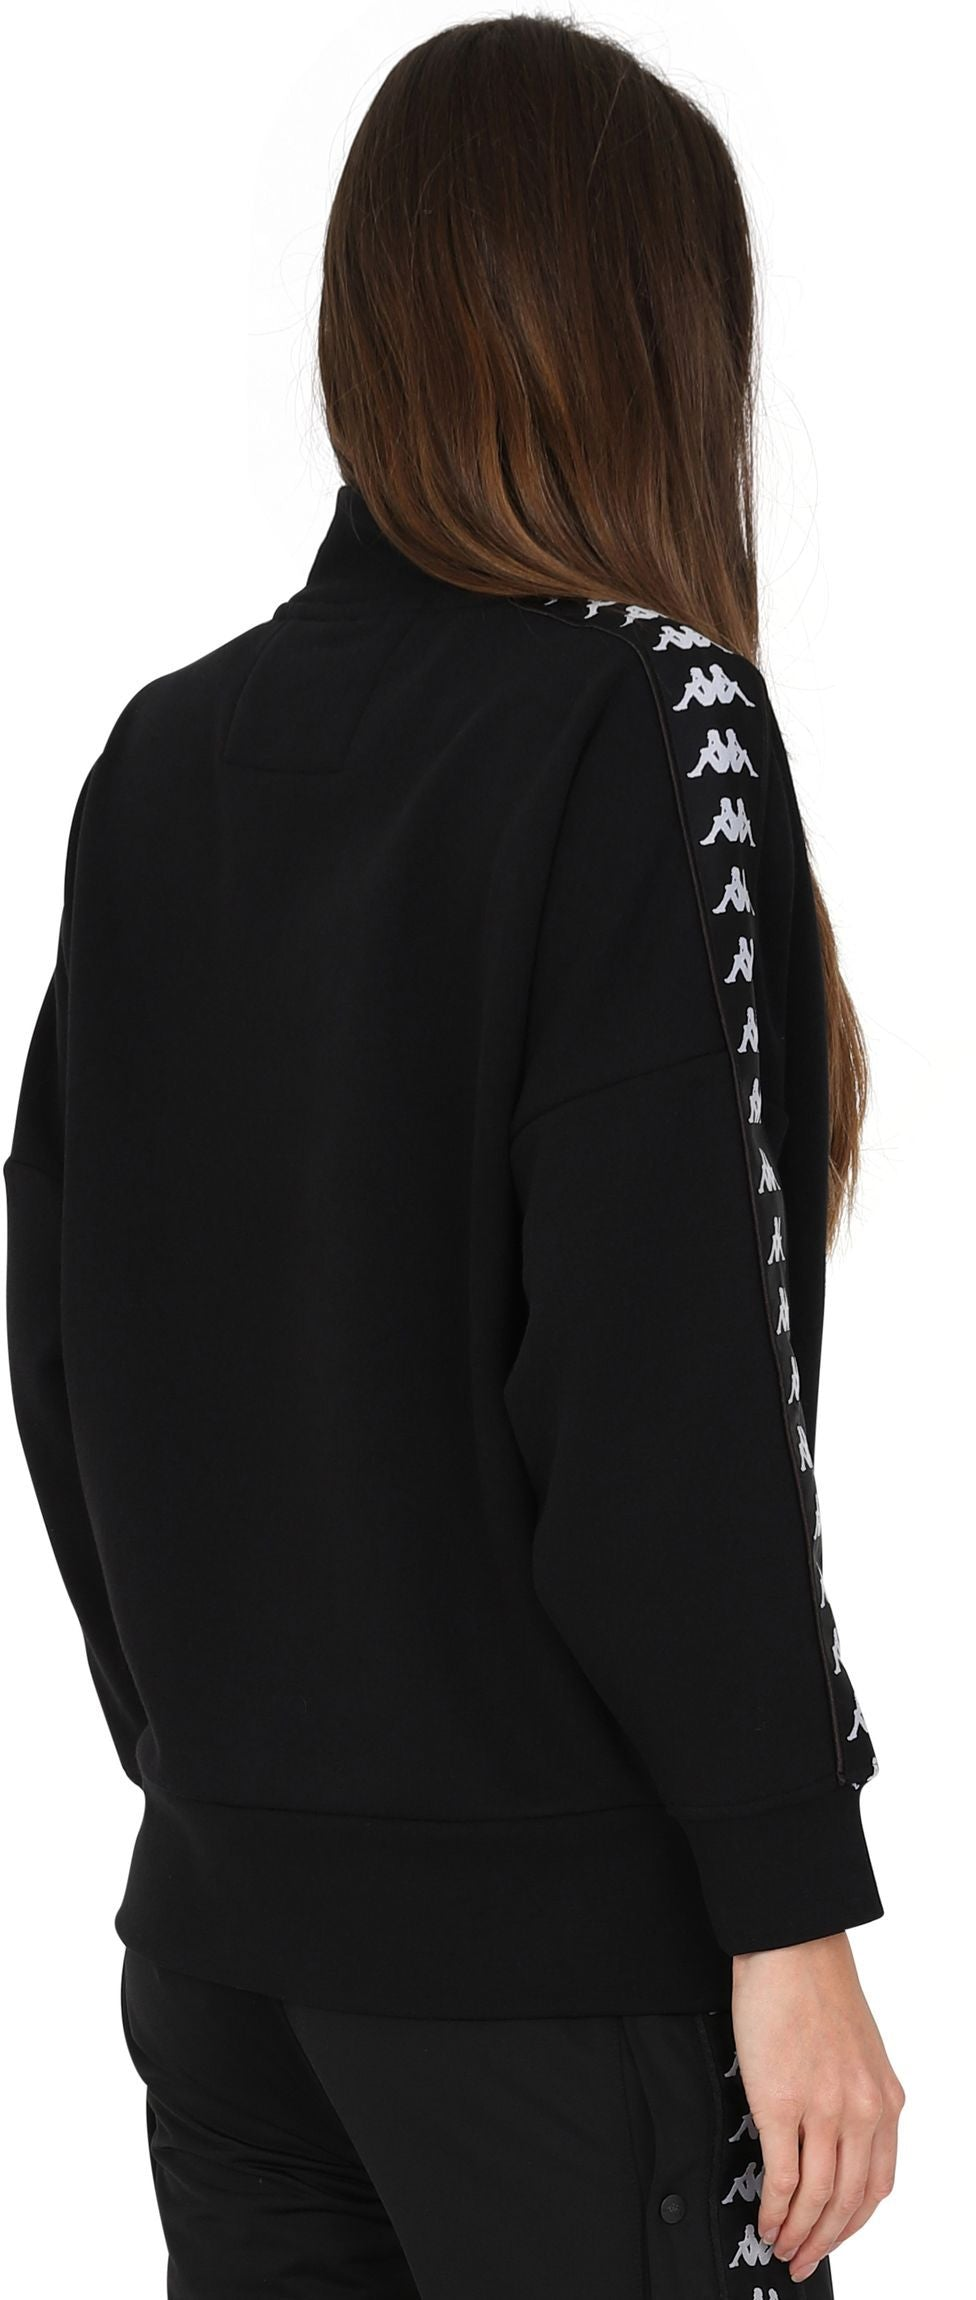 Kappa Women's Alkhe Oversized Sweatshirt Black